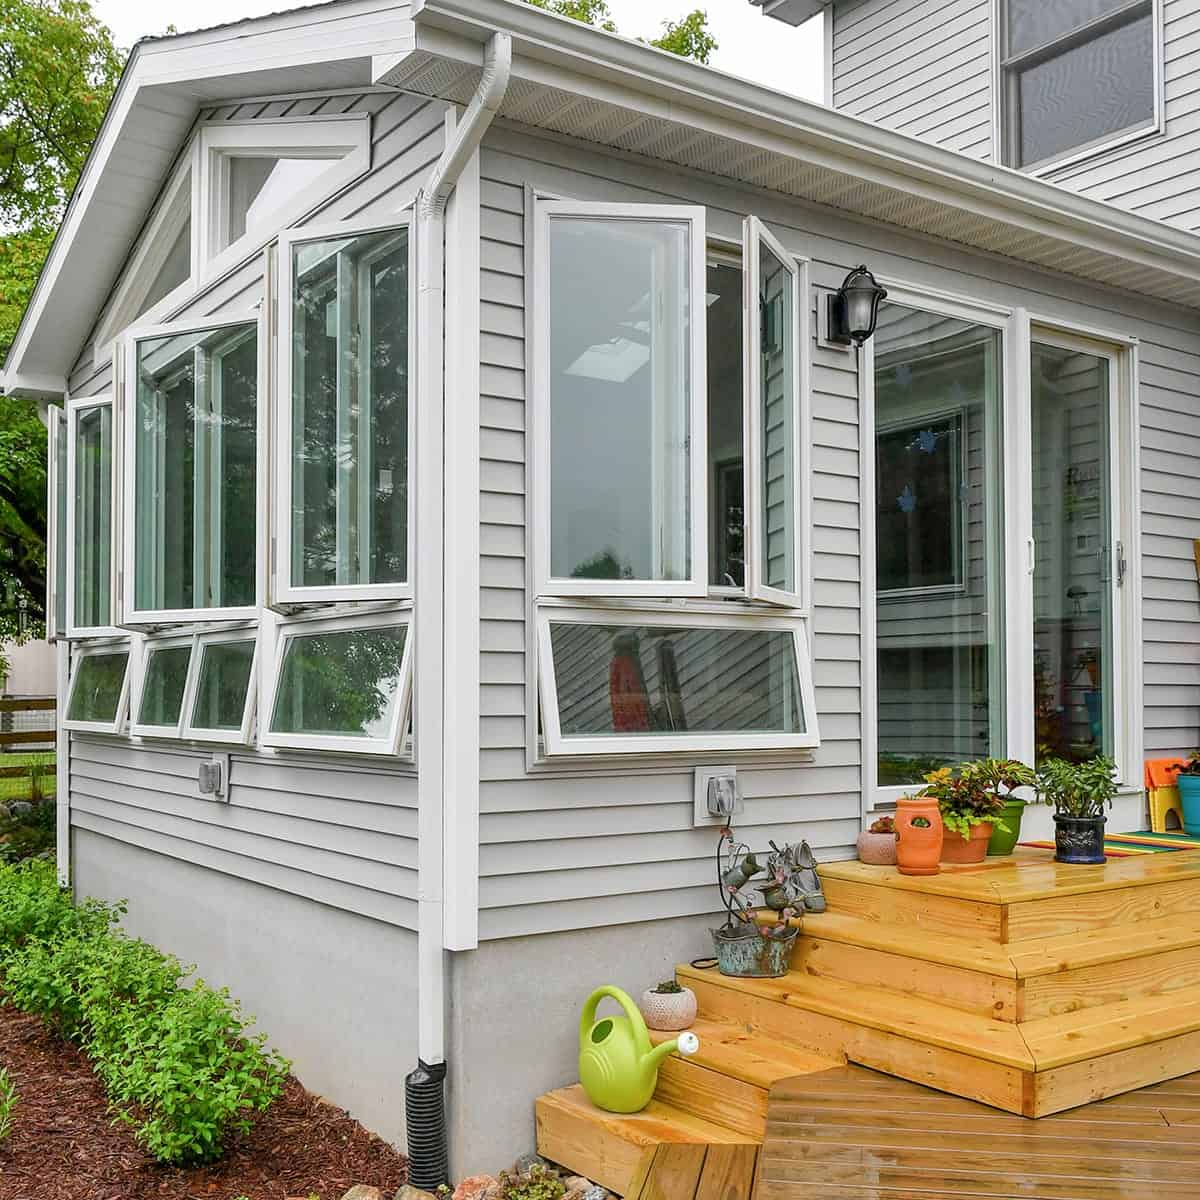 Lansing Window Replacement, Windows Lansing, Custom Built Design & Remodeling, Custom Built Design & Remodeling